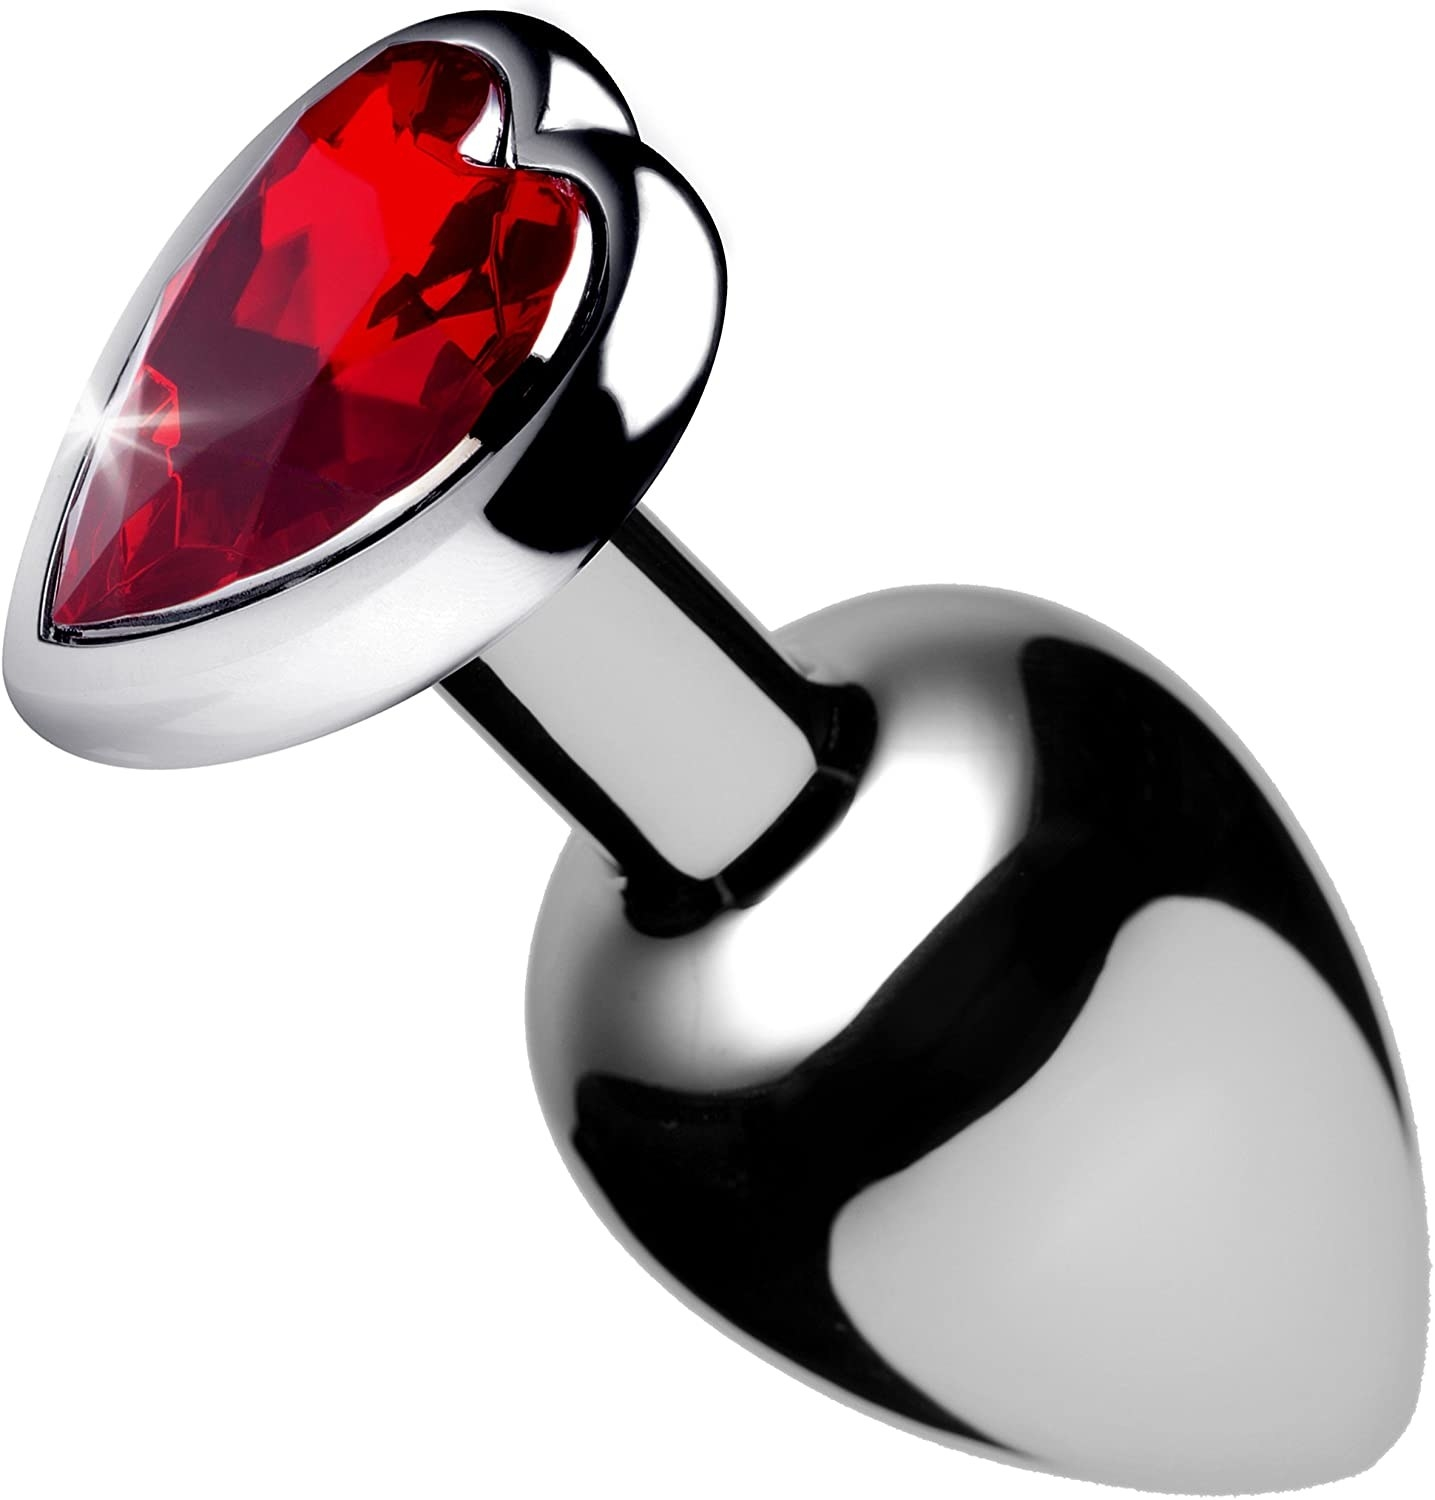 The metal butt plug with a red heart-shaped stone in the, uh, part that doesn't go in your butt.